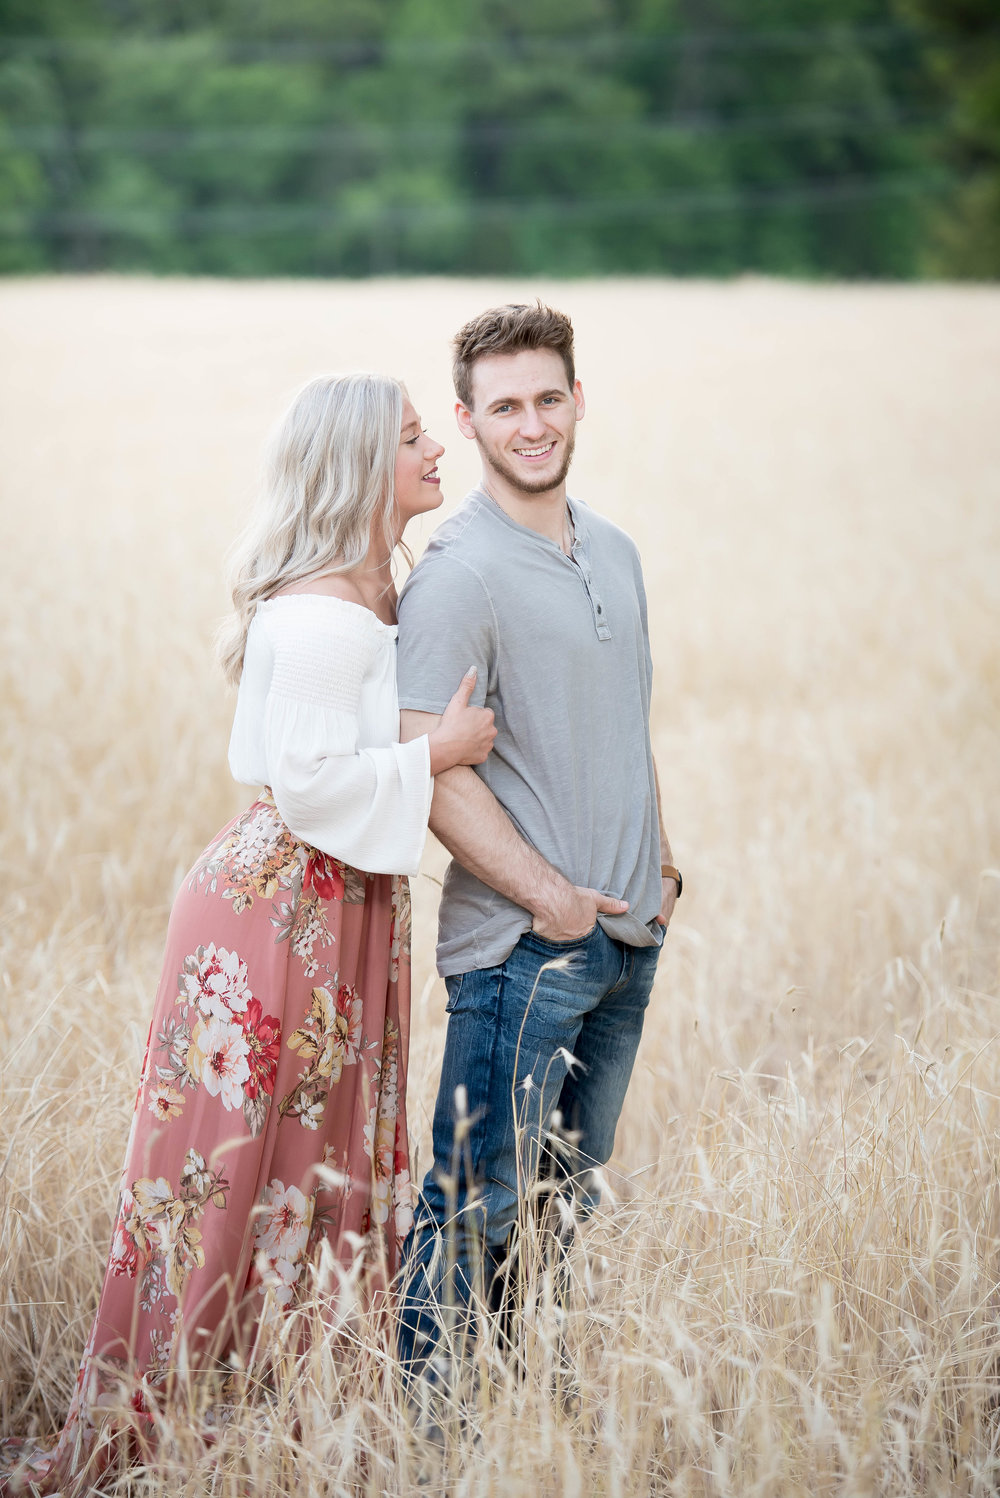 Couple Session - Fitness Couples - Tall Grass Field - Engagement Portrait Ideas - Engagement Session Ideas - Couple Session Ideas - Spring Picture Ideas-13.jpg